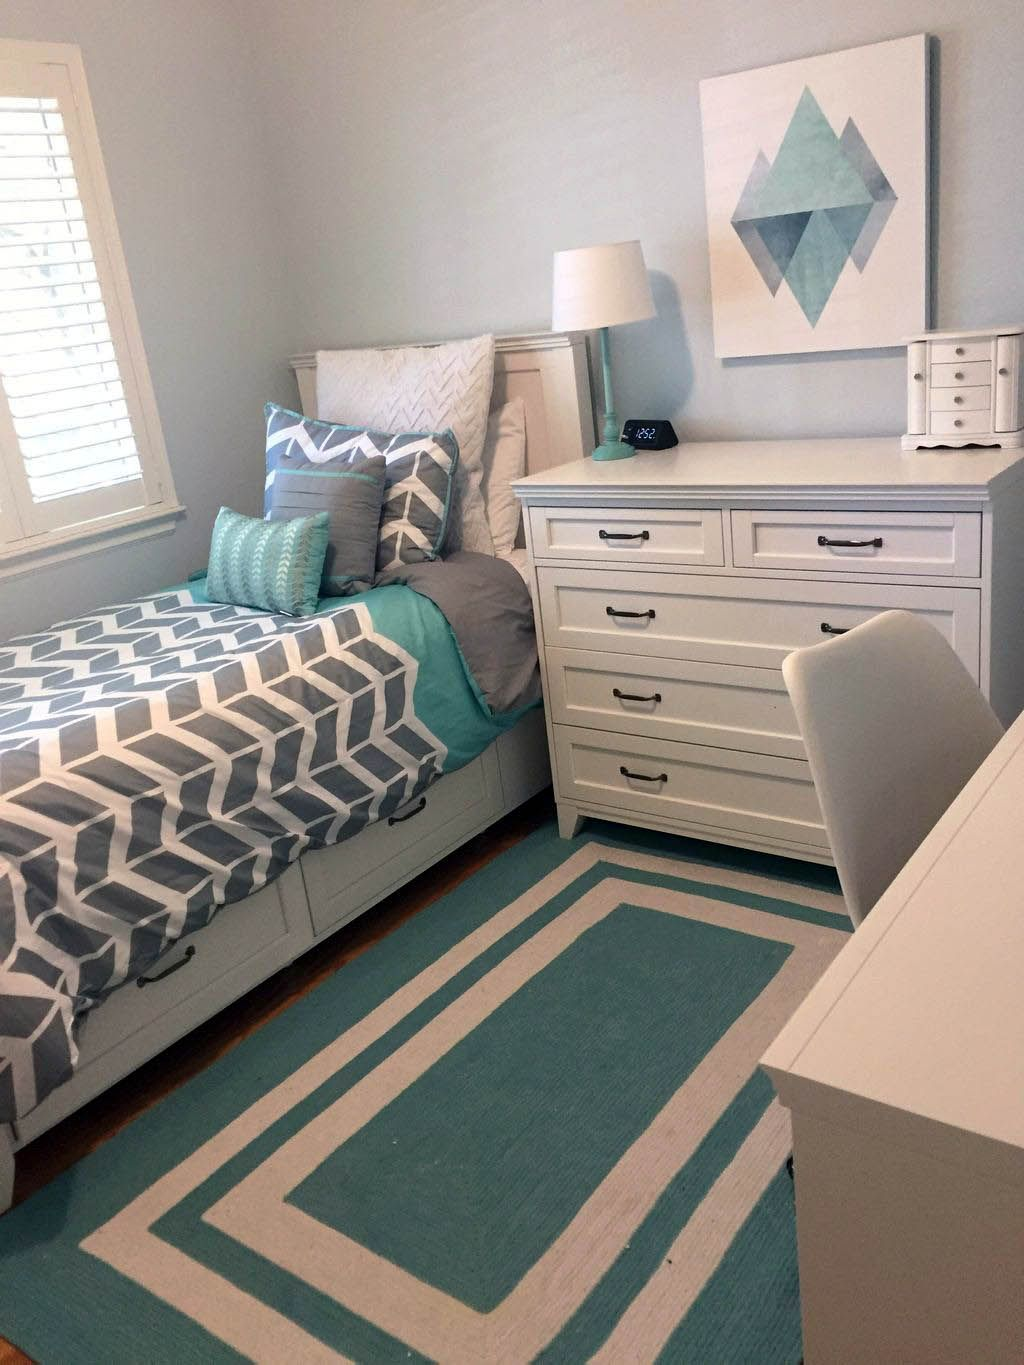 Finest Childrens Bedroom Ideas Pinterest To Refresh Your Home Small Master Bedroom Small Bedroom Small Room Bedroom